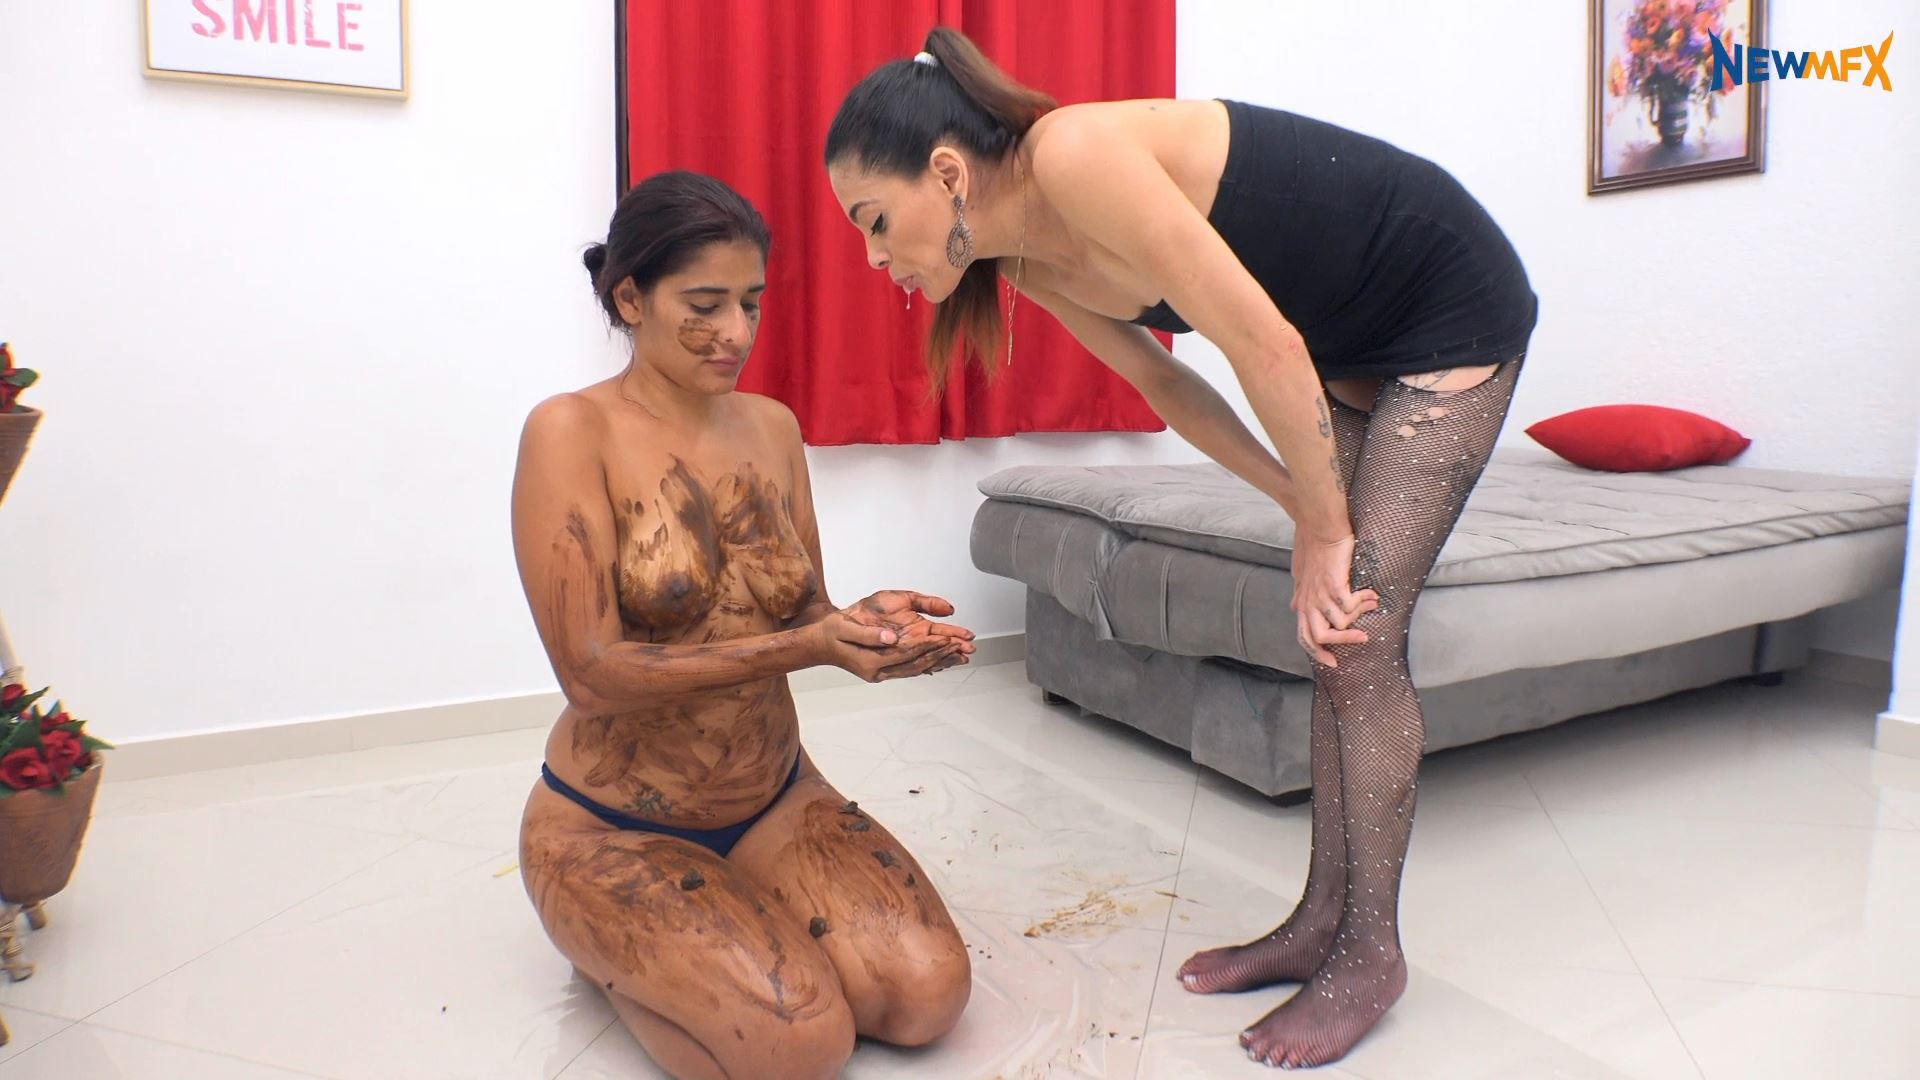 [NEW SCAT IN BRAZIL / NEWMFX] DIRTY MOMENTS. Featuring: Jessica, Mel [FULL HD][1080p][MP4]